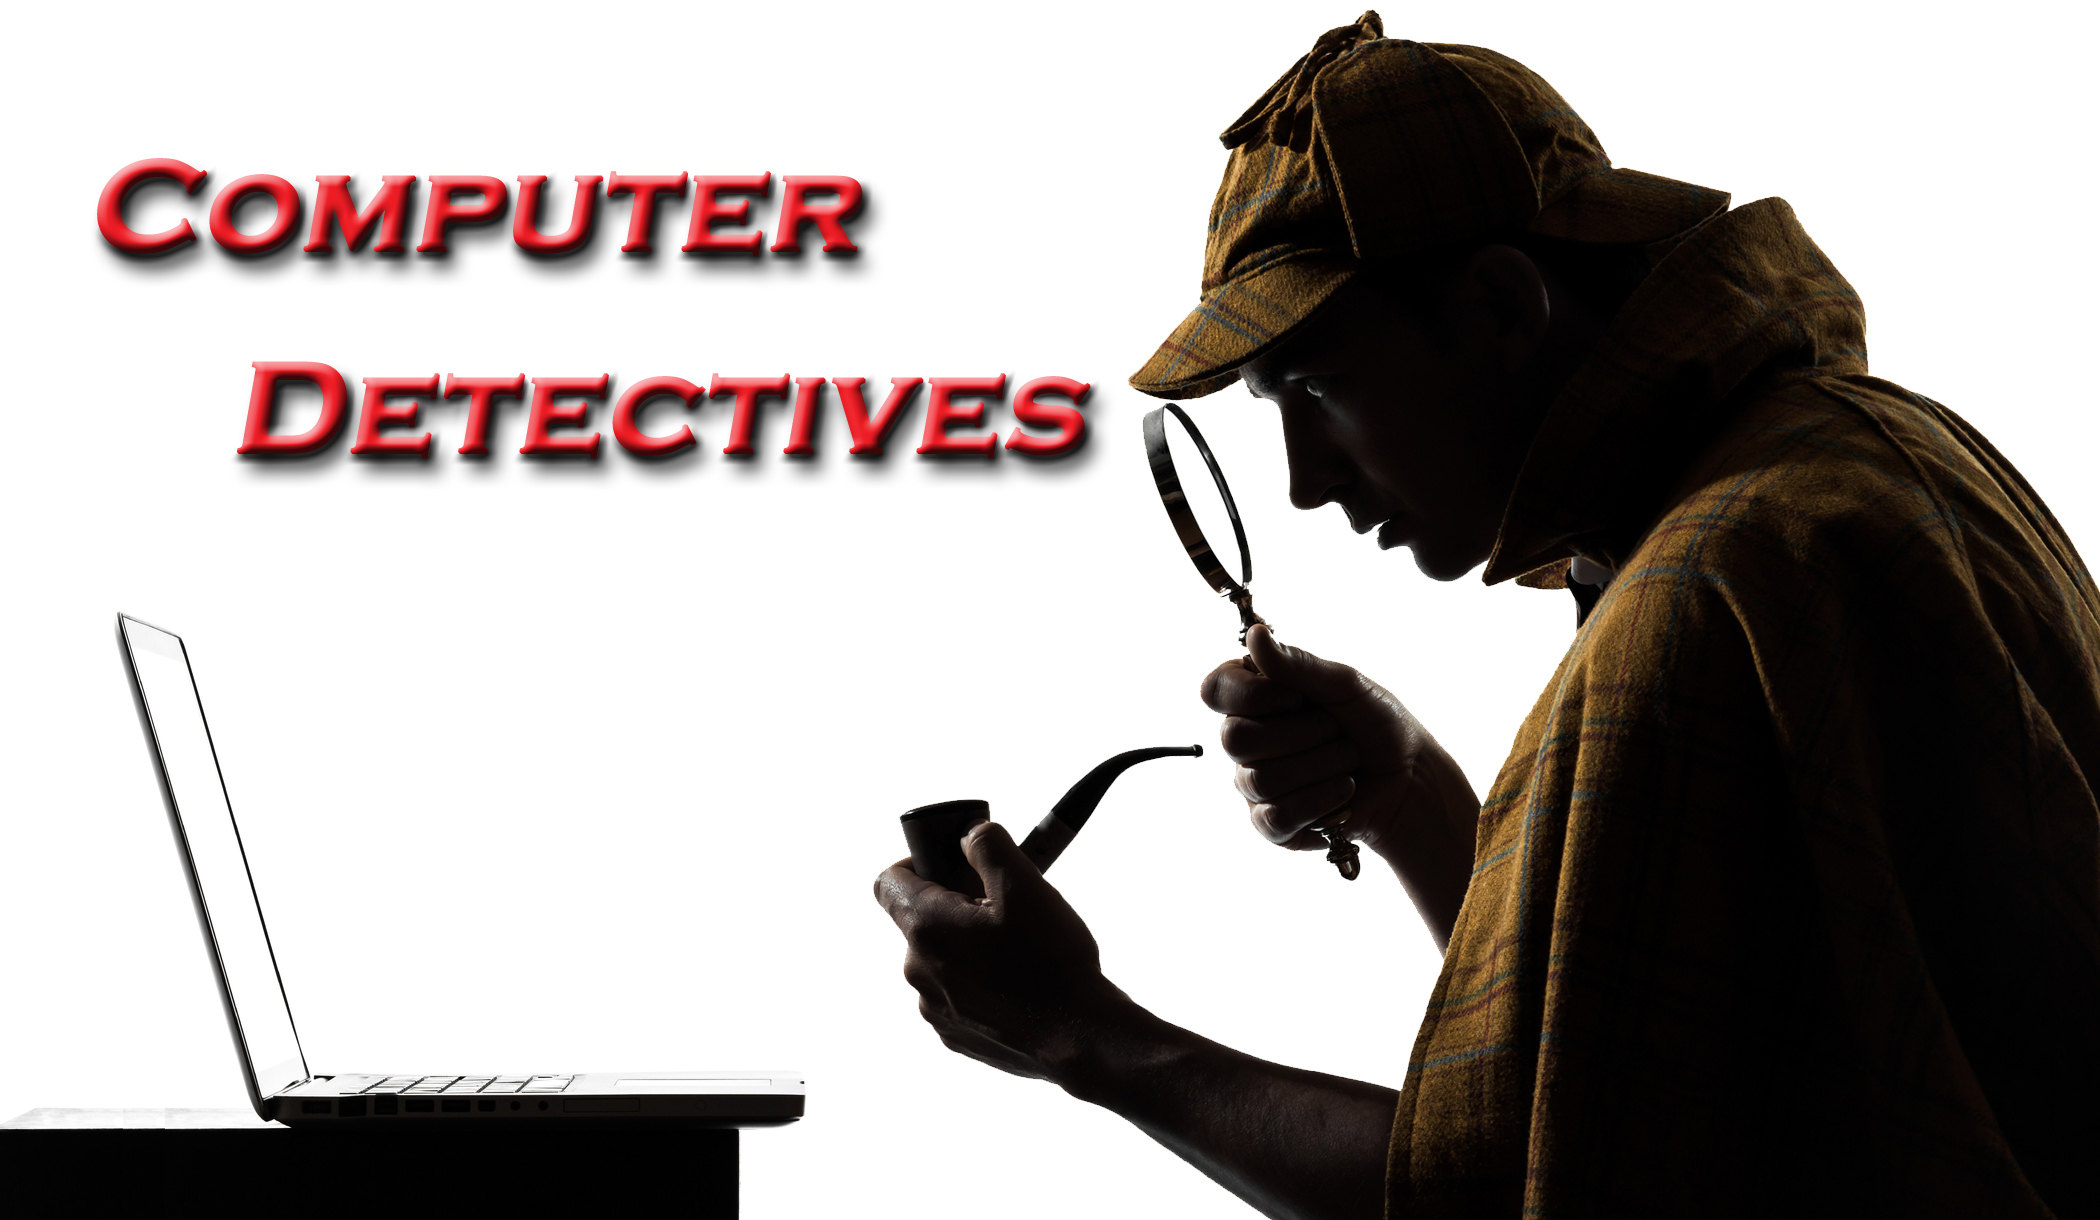 Computer Detectives